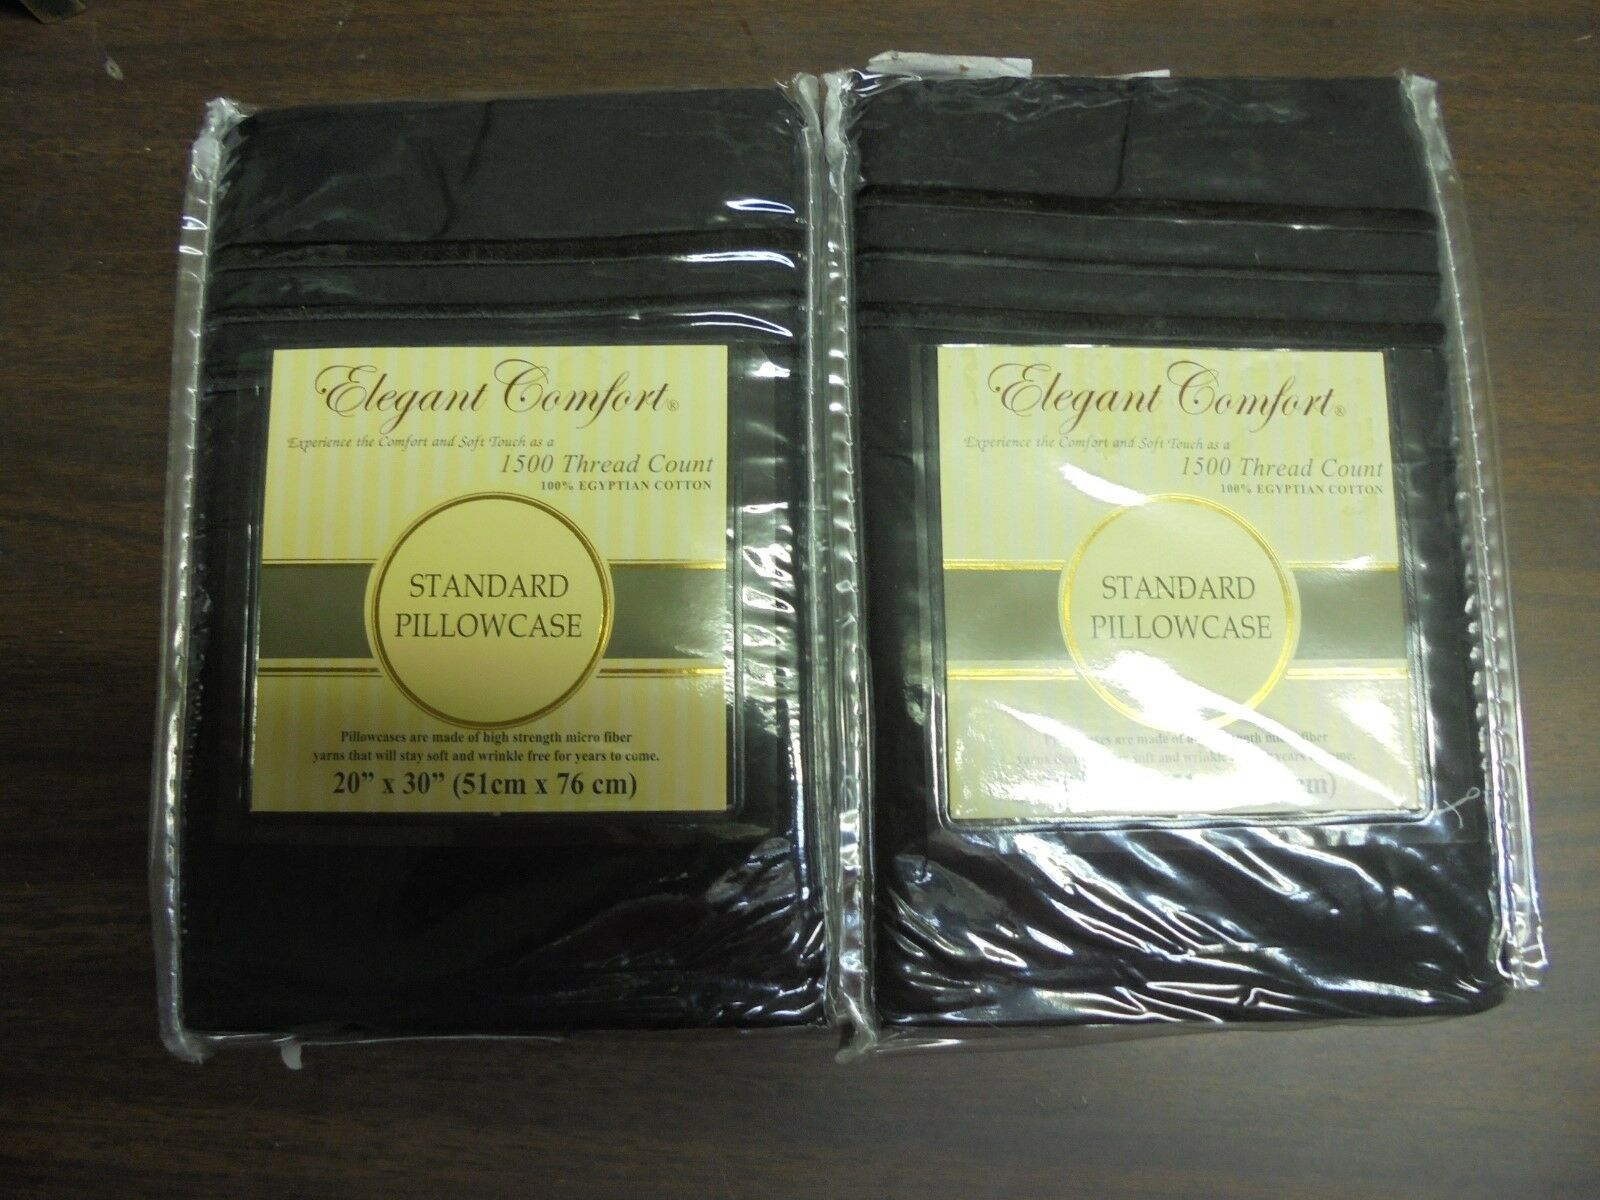 Set of  Elegant Comfort Black 20x30 Standard Pillow Cases